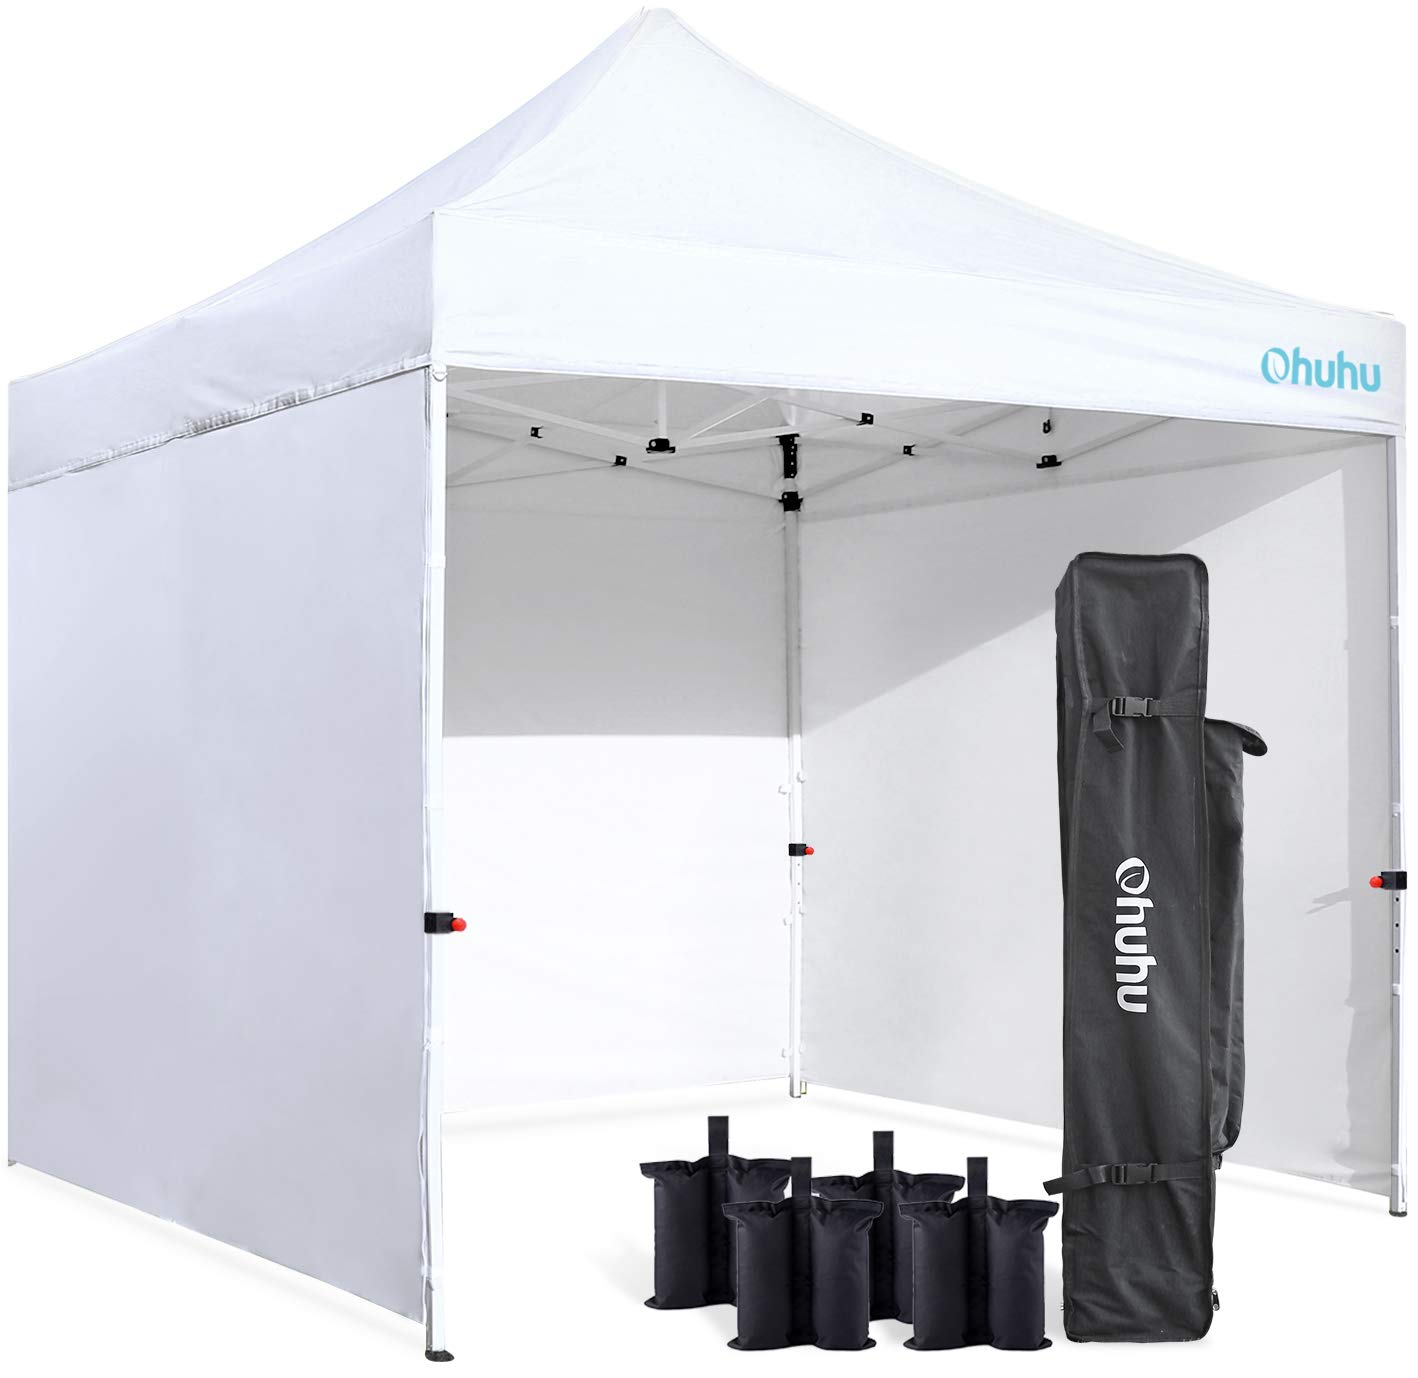 Ohuhu Sturdy 10 x 10 FT Pop-up Canopy Tent with Reinforced Metal Frame, 4 Removable Zipper End Side Walls Wheeled Carrying Bag, Bonus 4 Weight Bag